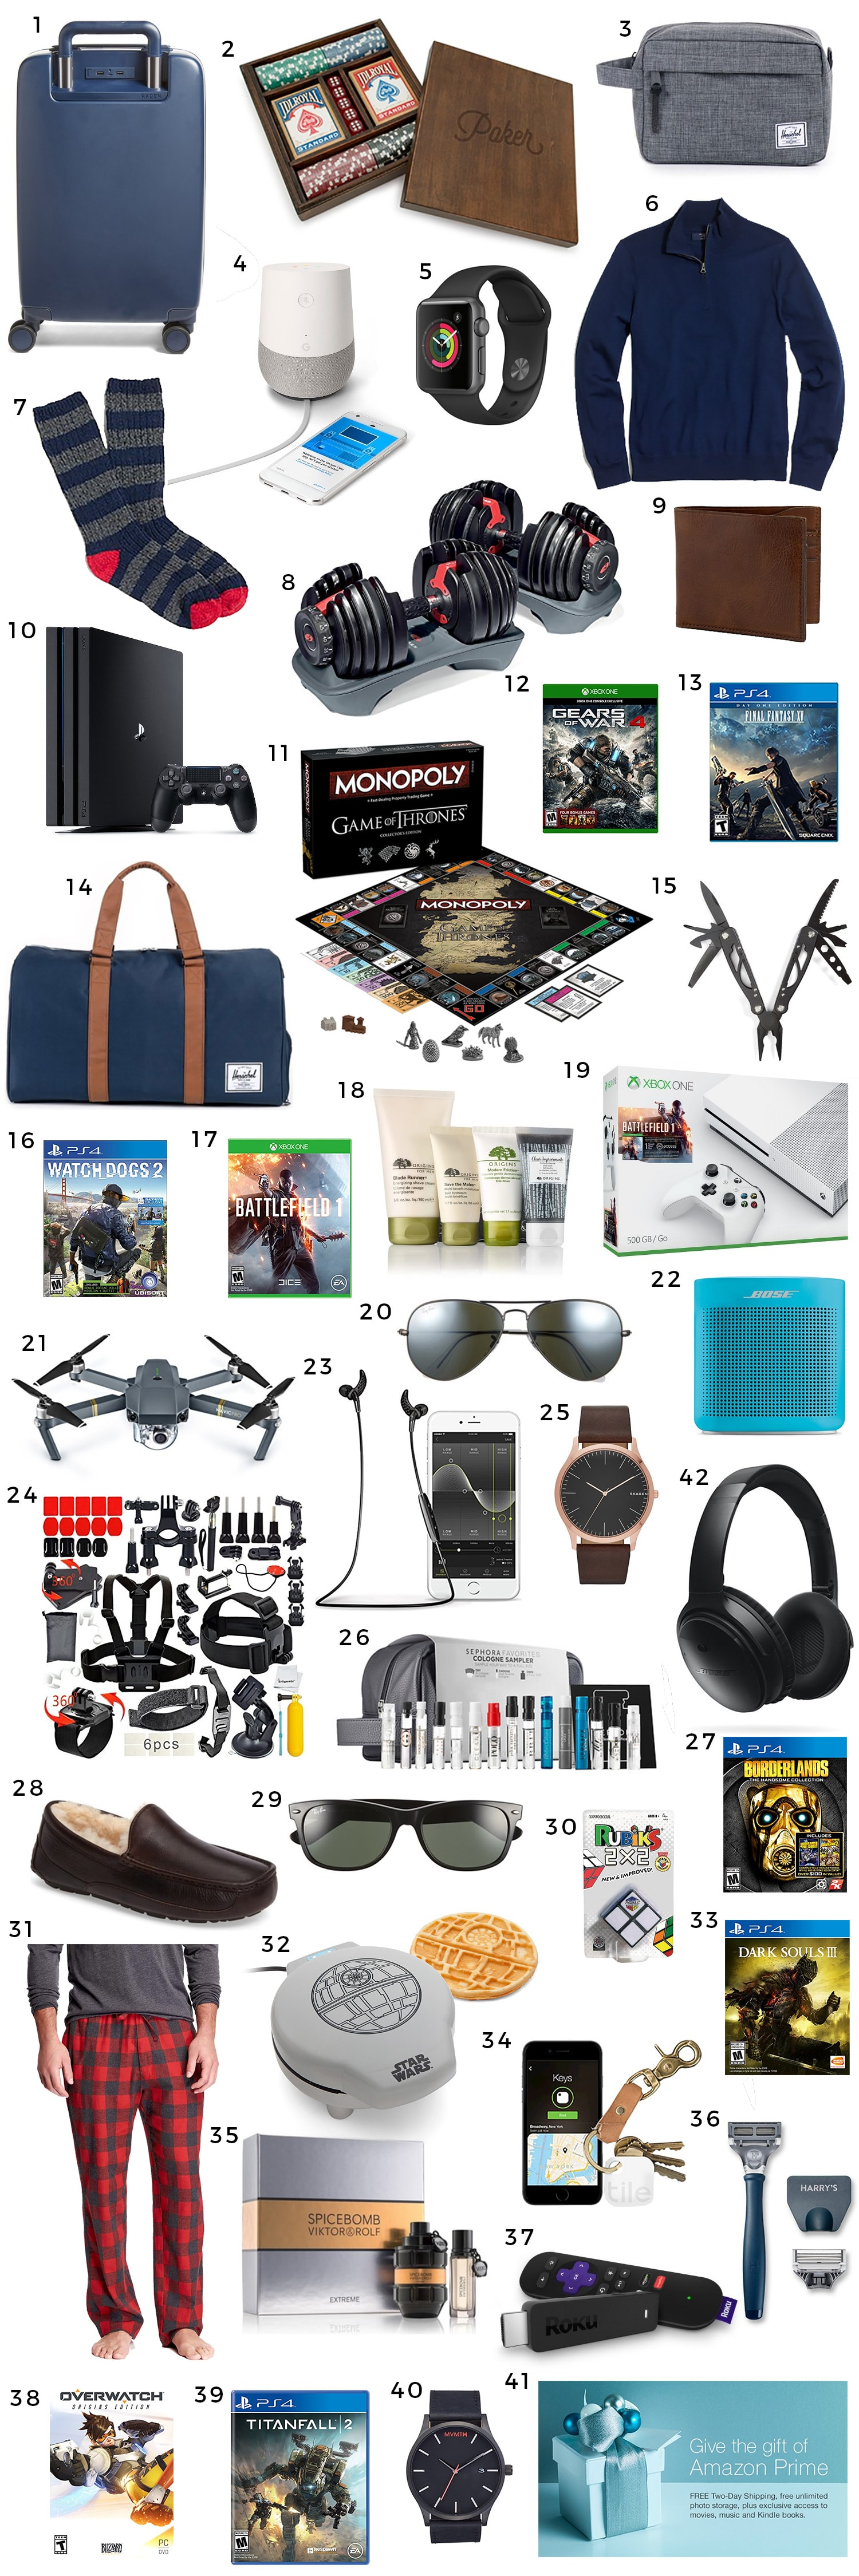 The Best Christmas Gift Ideas For Men Ultimate Guide Filled